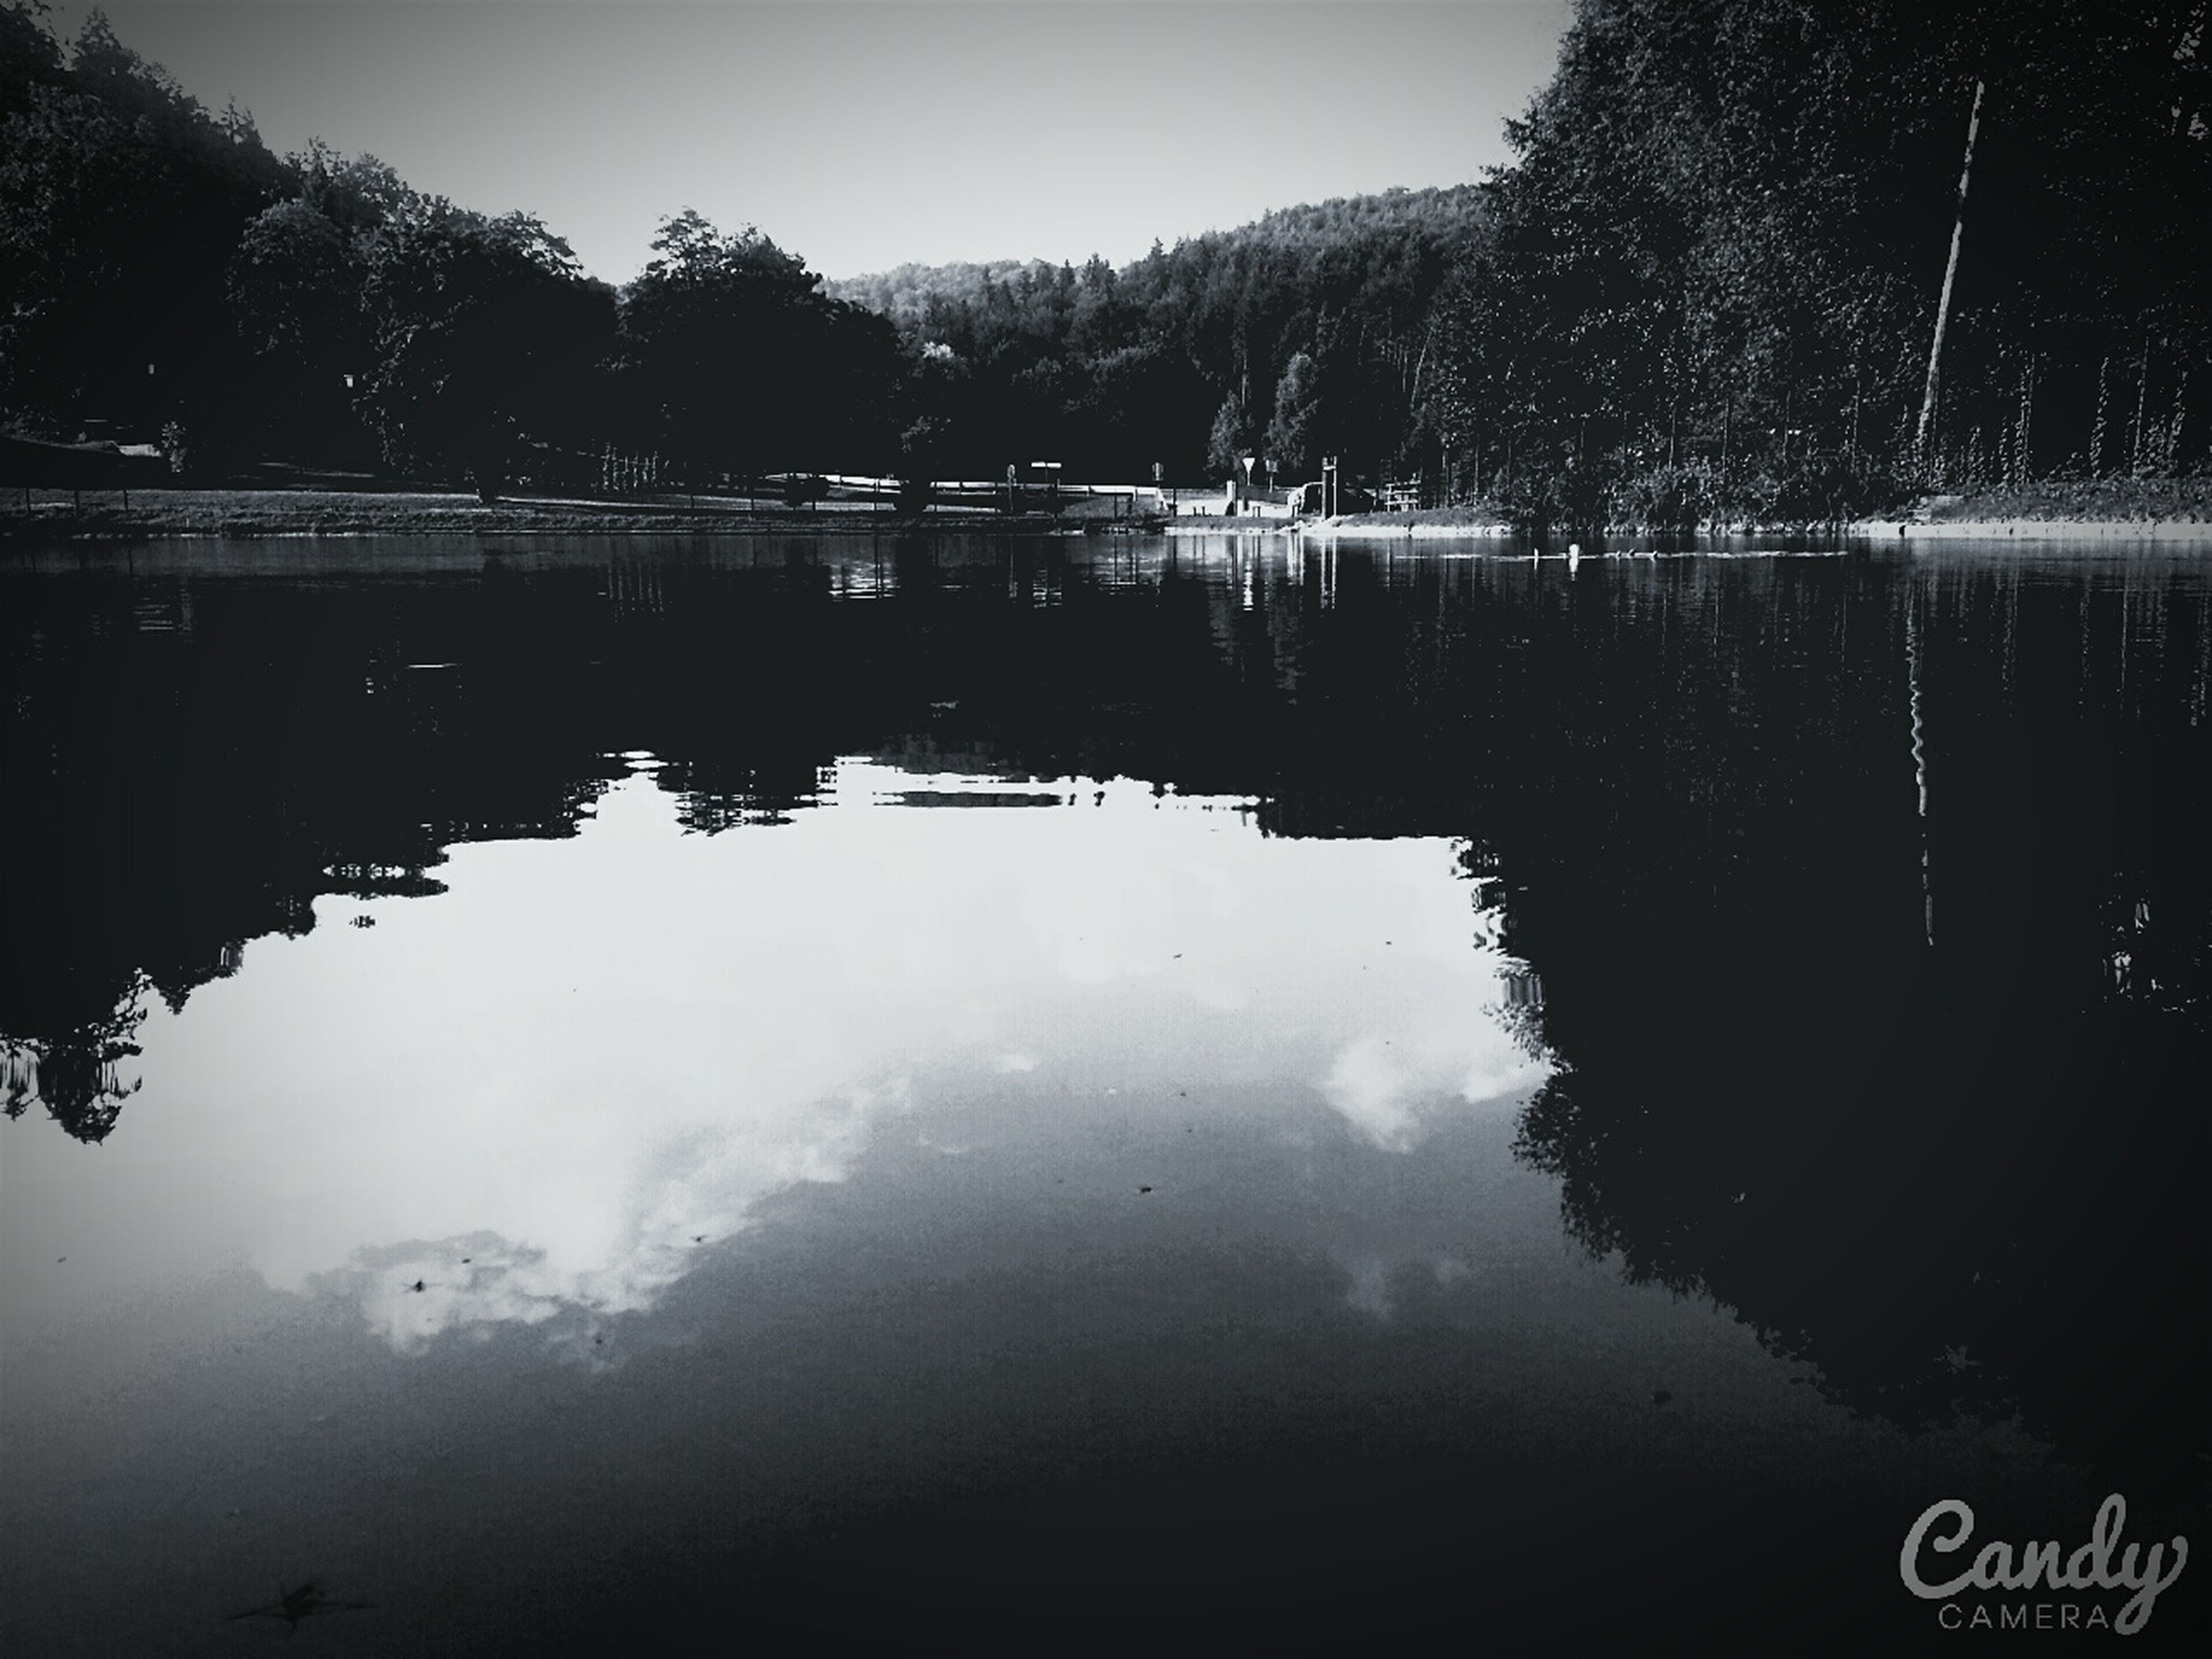 reflection, water, lake, waterfront, standing water, tranquility, tranquil scene, scenics, beauty in nature, nature, tree, sky, calm, symmetry, no people, clear sky, idyllic, outdoors, day, wet